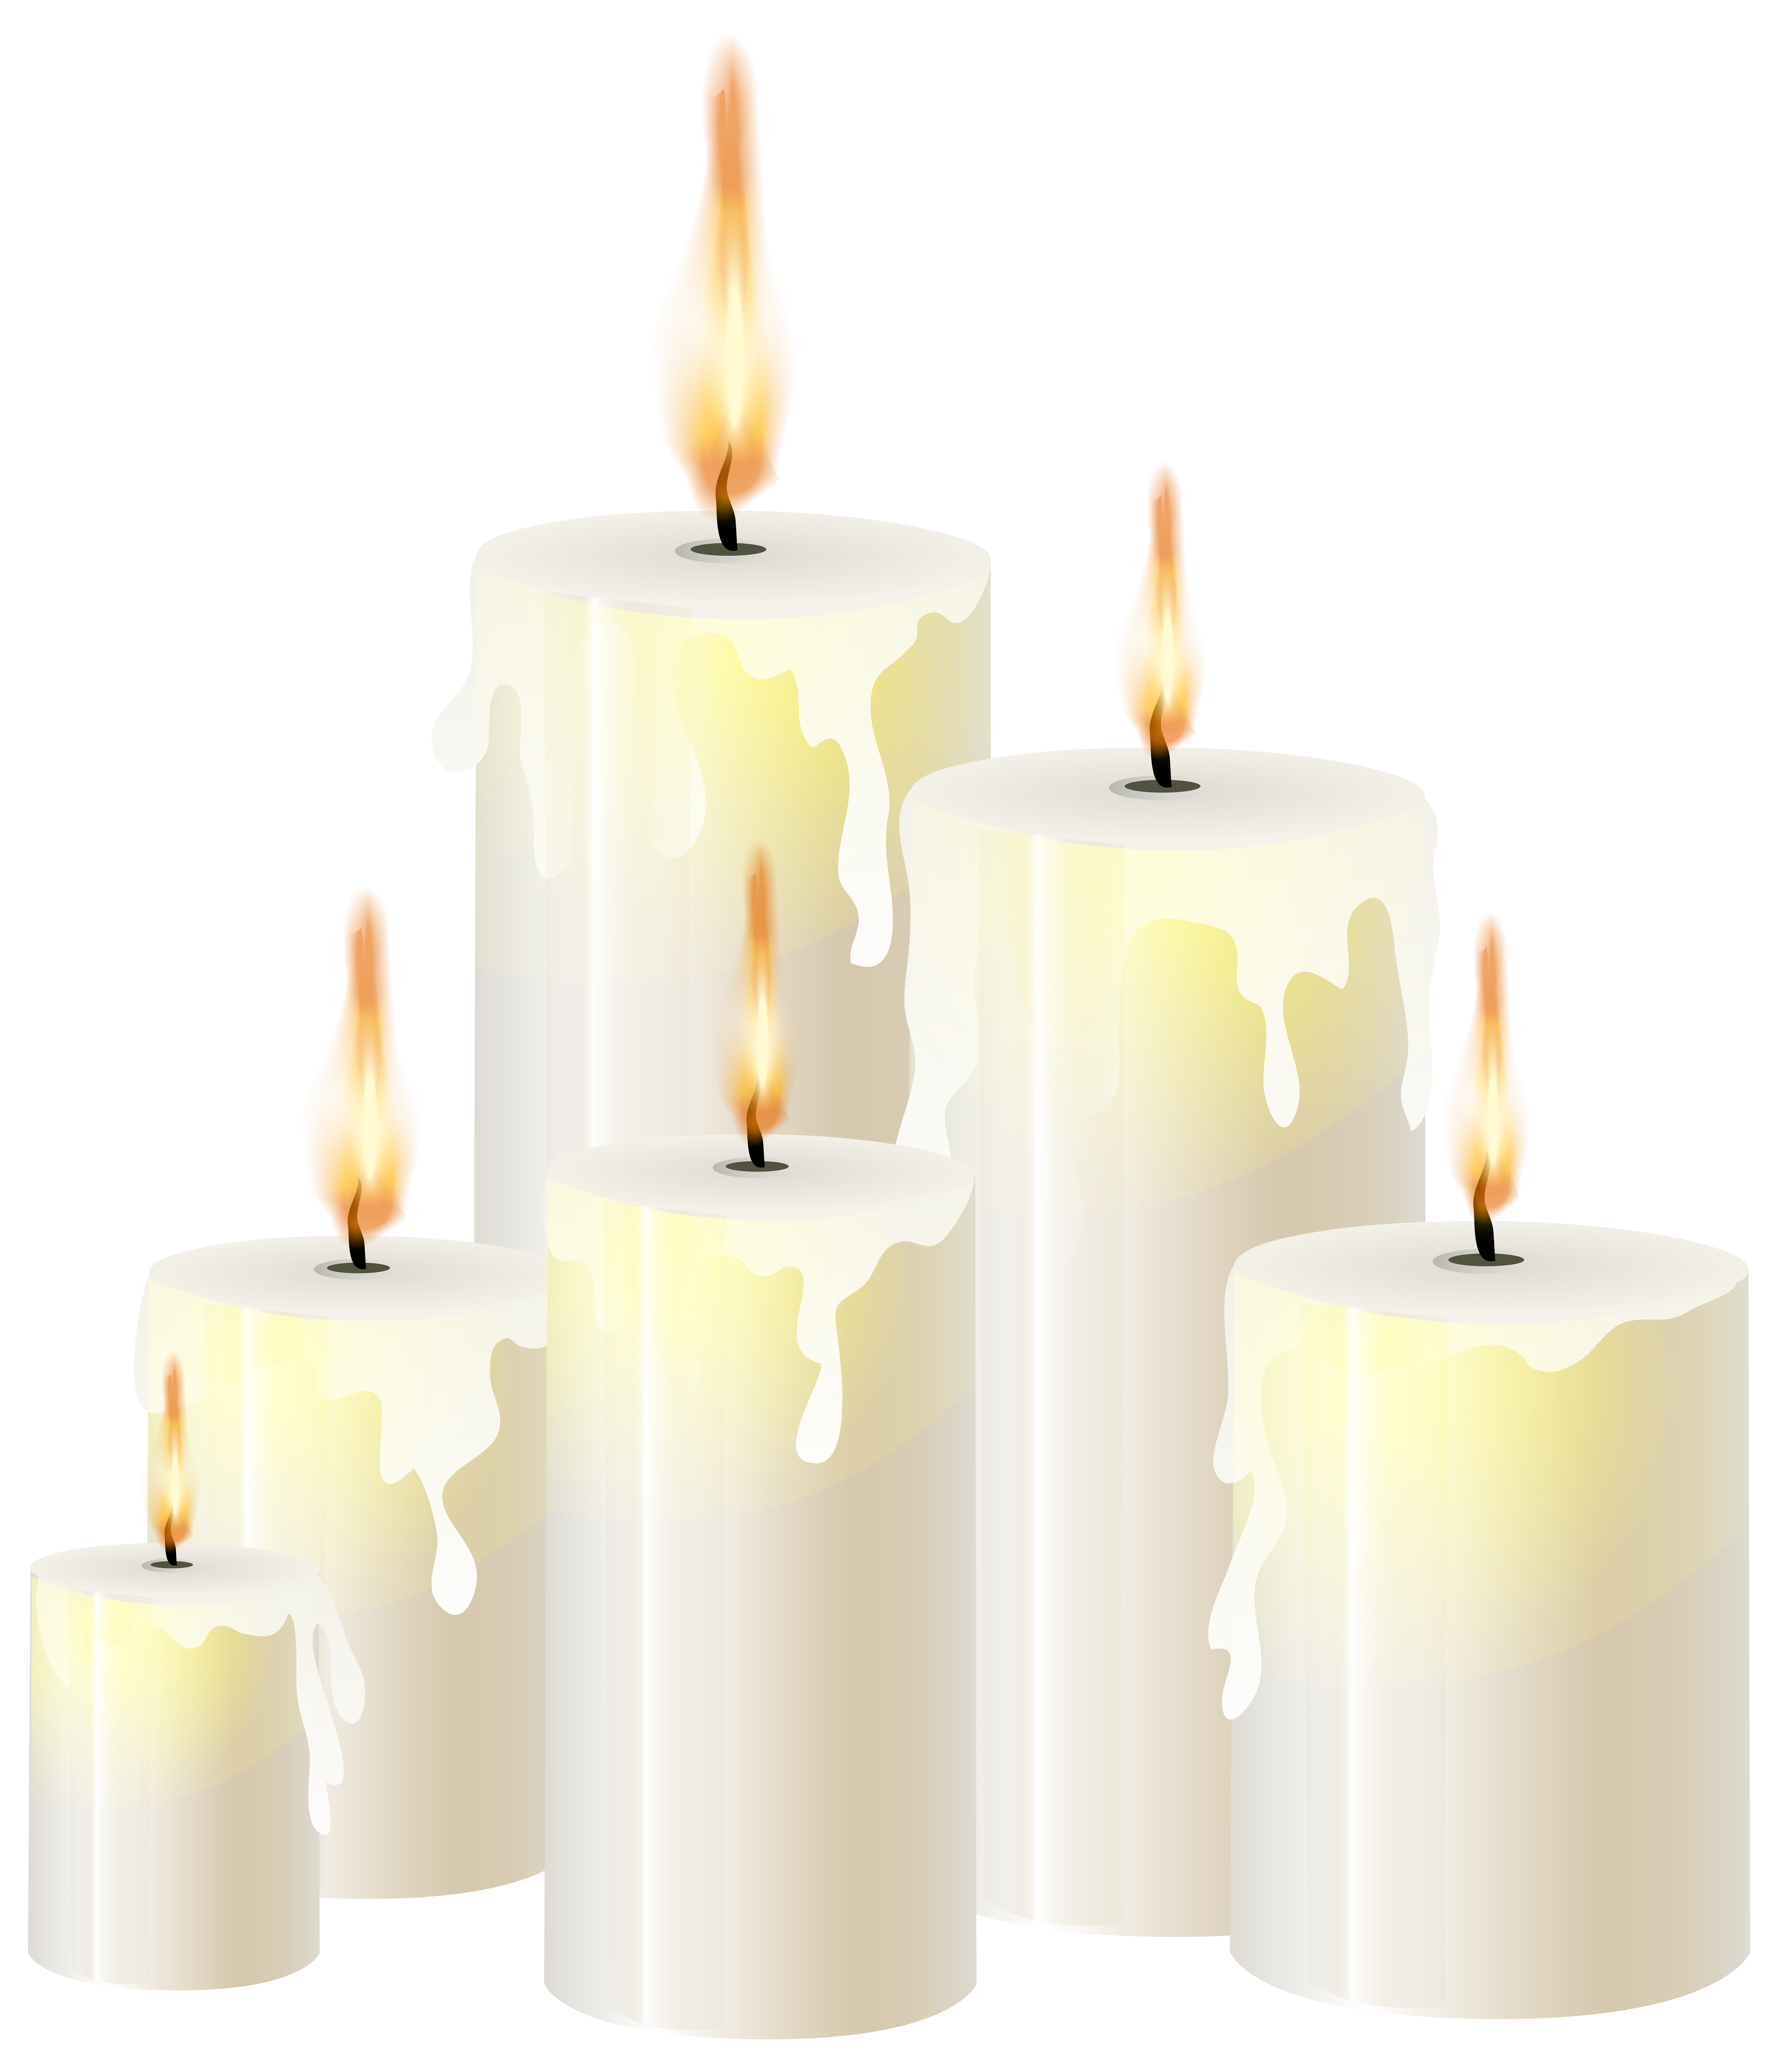 Candle png. White candles clip art